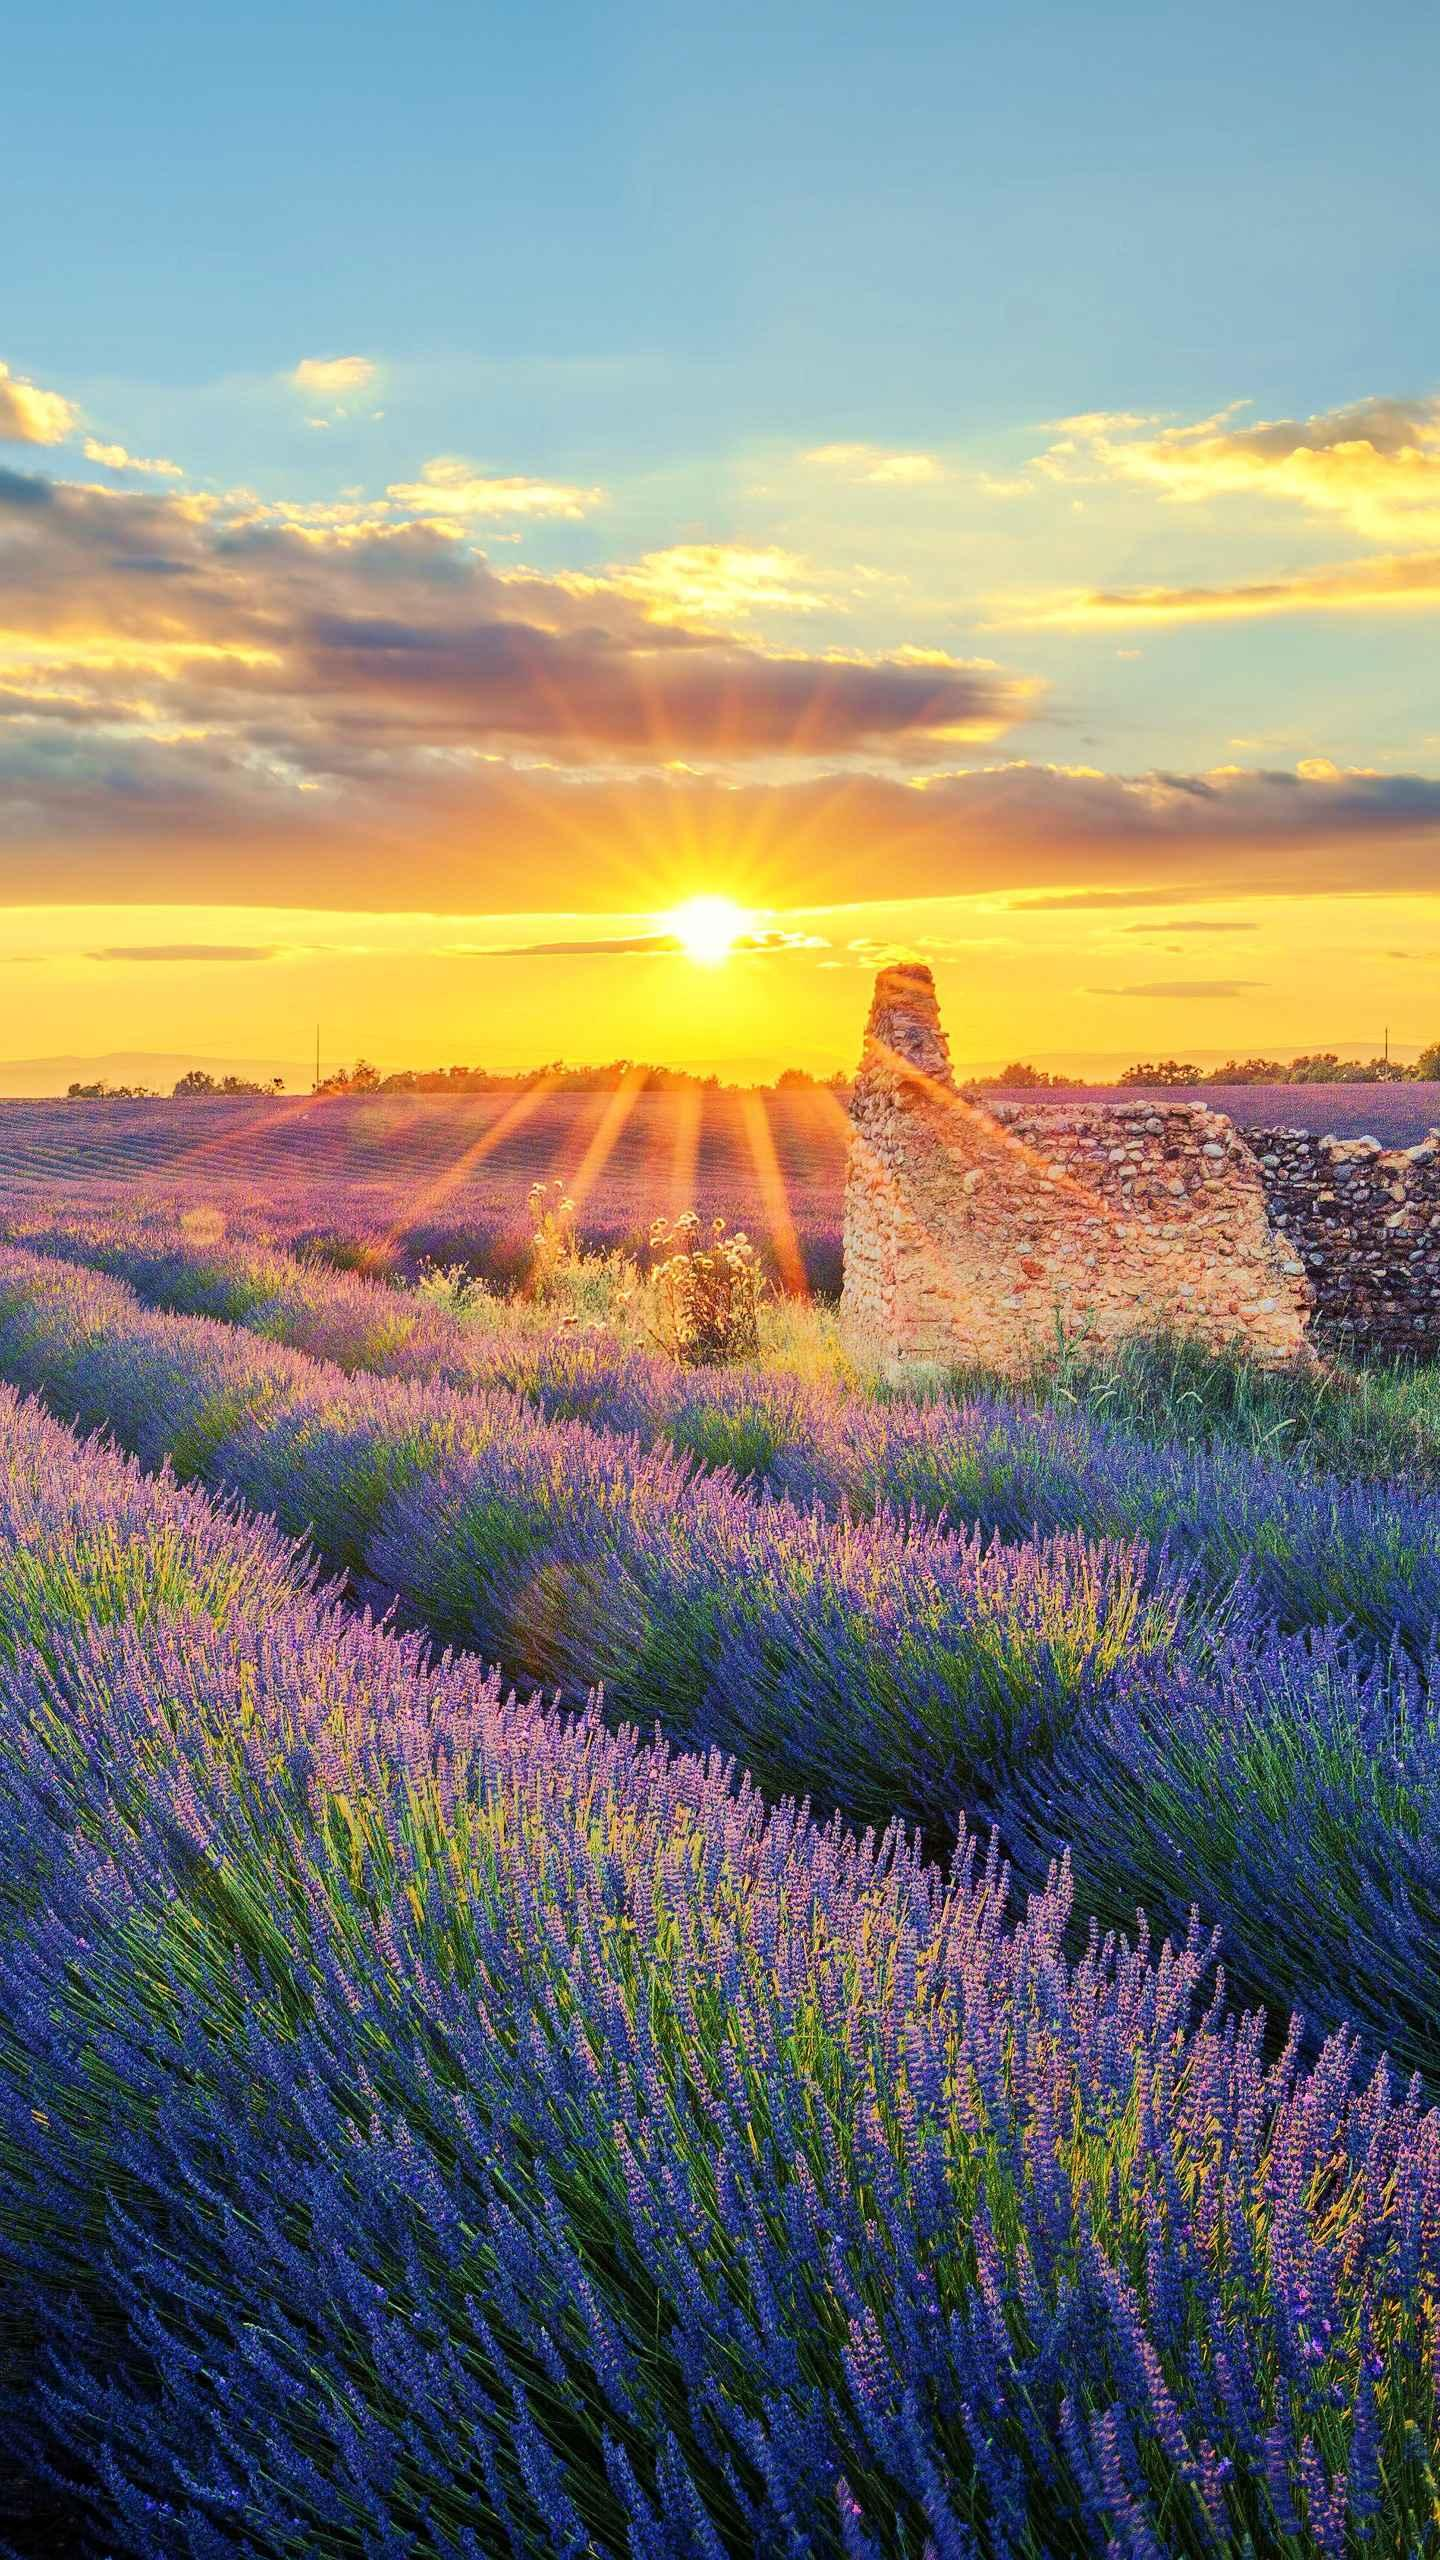 The land of lavender. Provence is the birthplace of medieval knights, and the famous towns are Marseille and Aix.